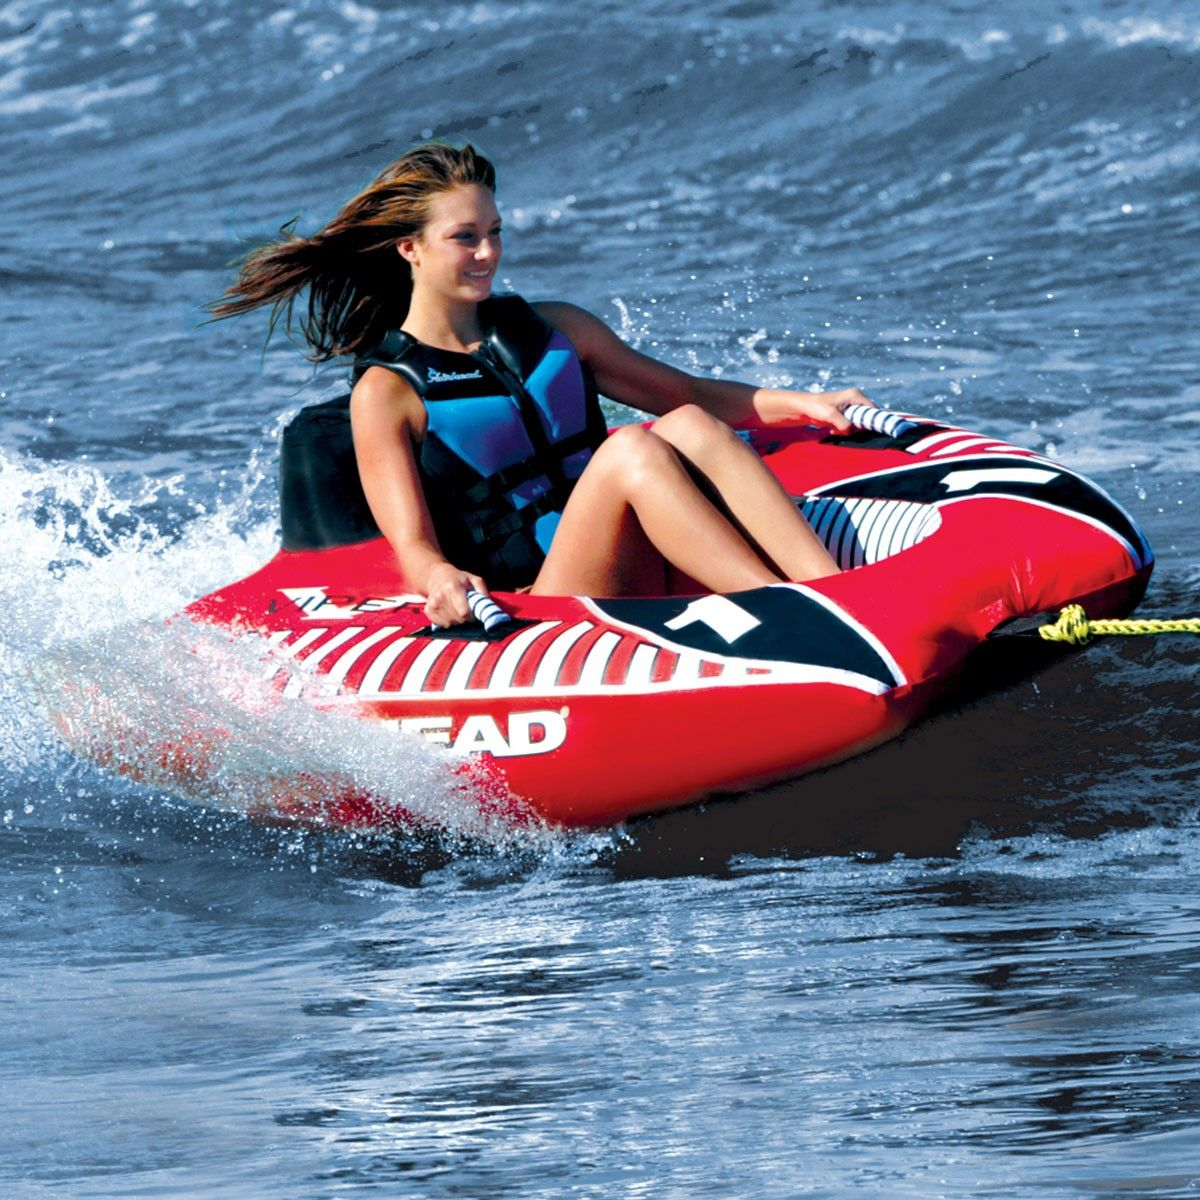 Viper 1 Towable Tubes Boat Tubes Water Skiing